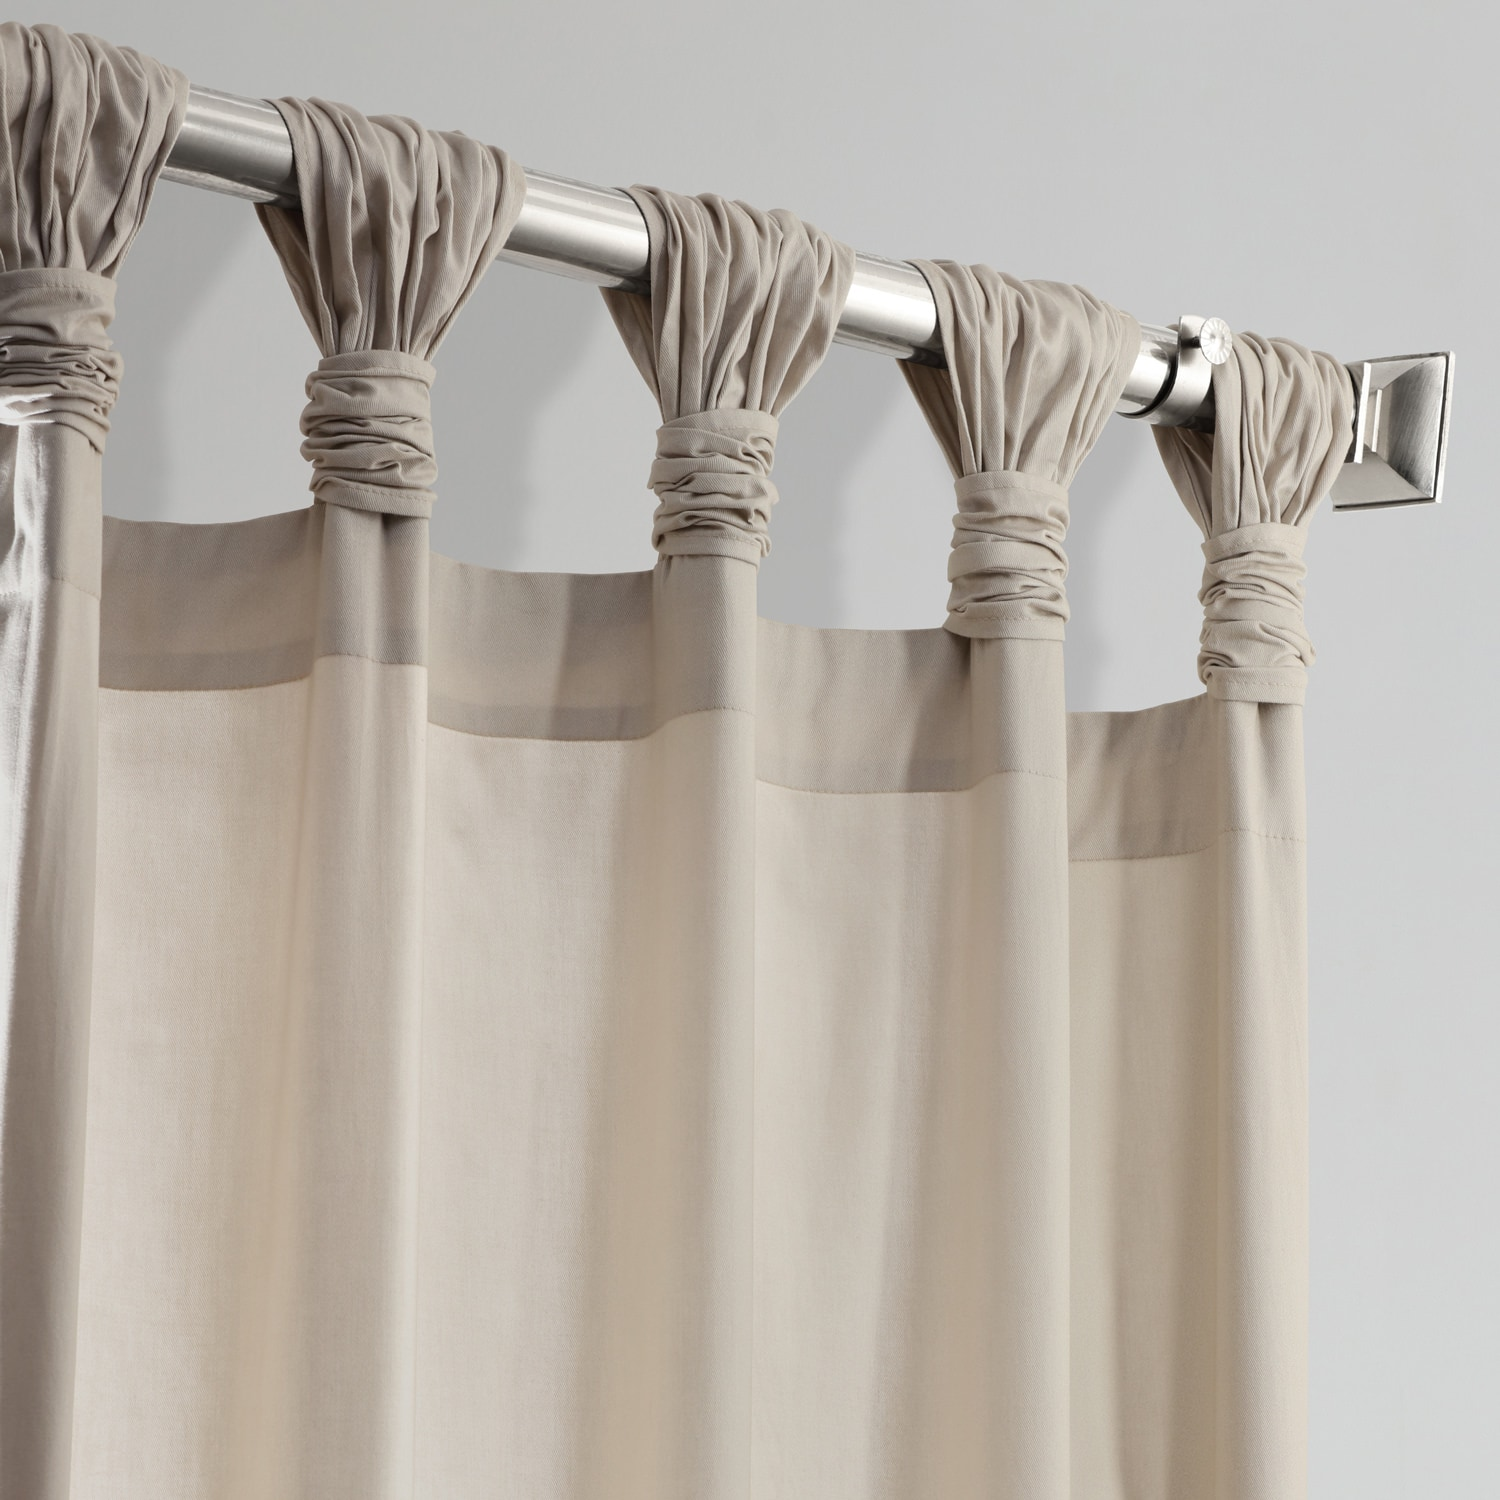 Hazelwood Beige Solid Cotton Deluxe Tab Top Curtain